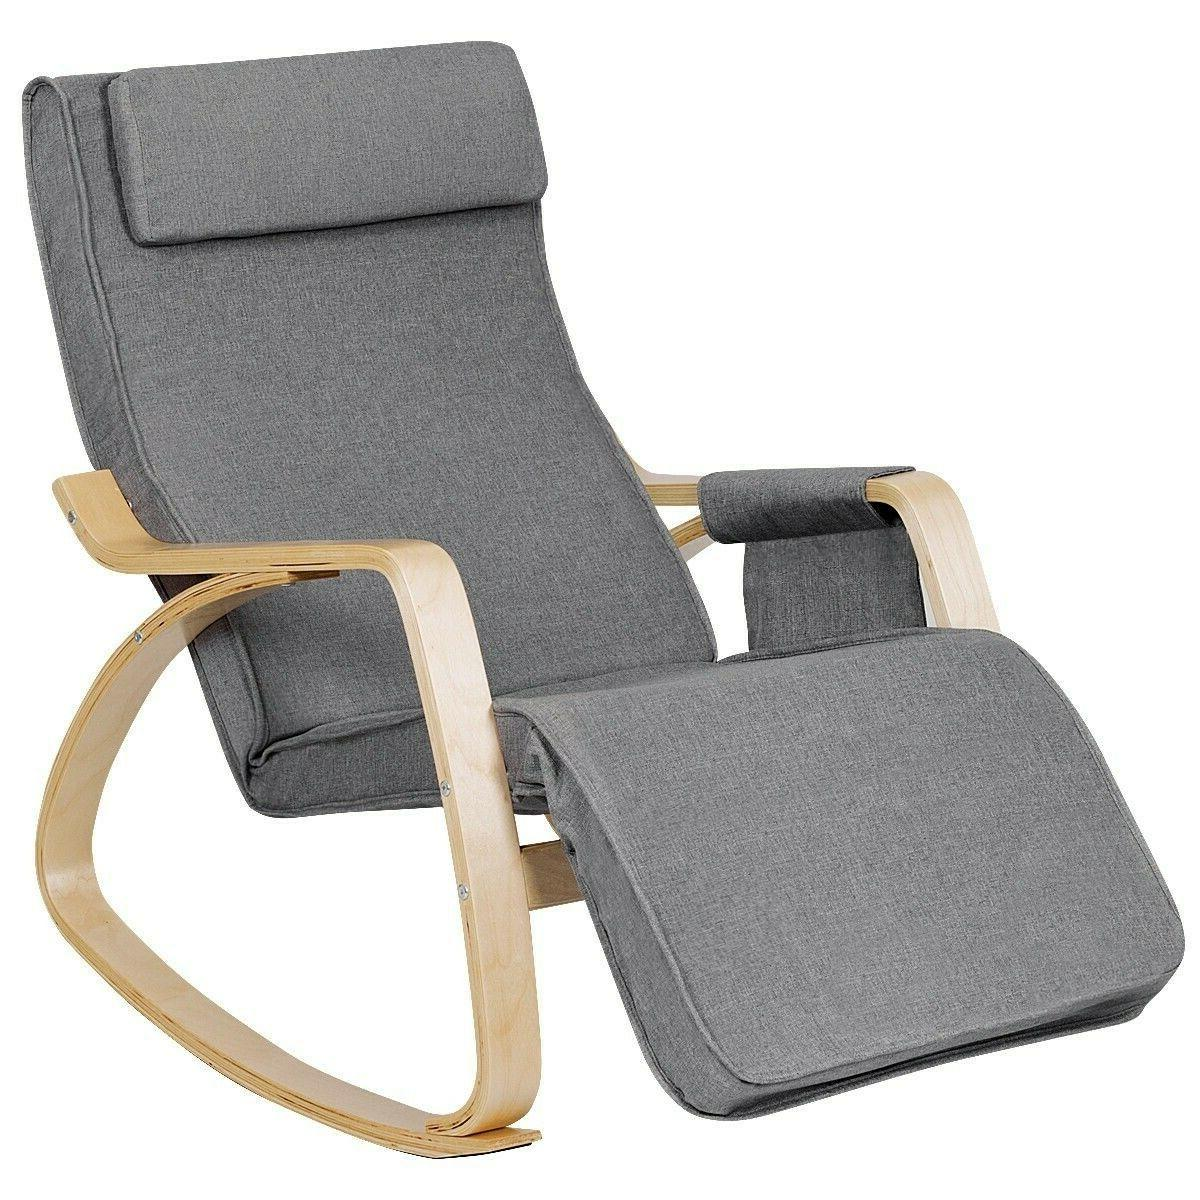 Indoor Rocking Chair Armchair Relax